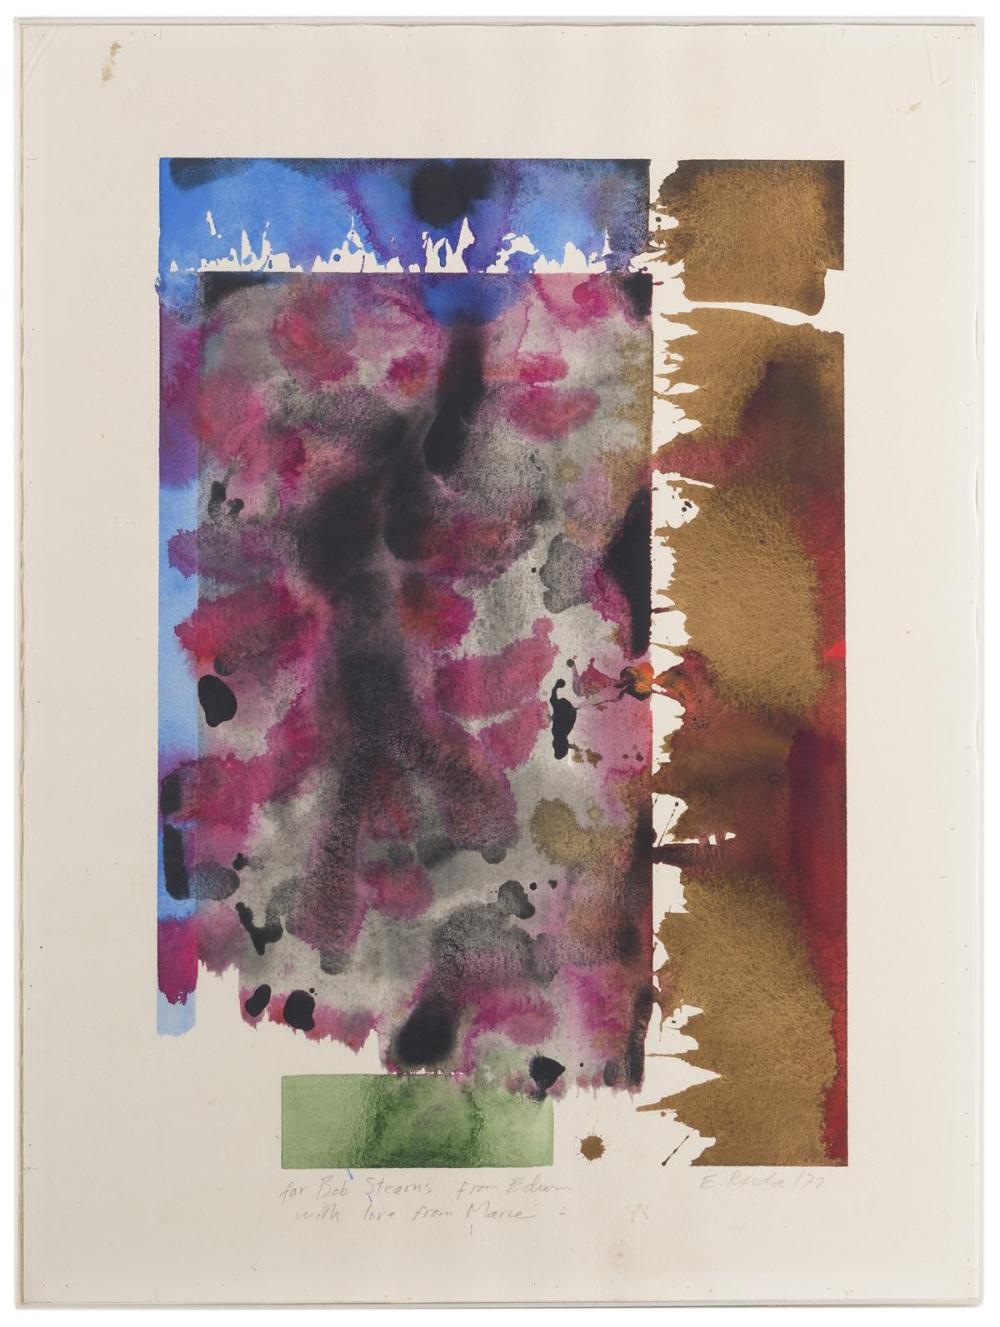 Edwin Ruda, (1922-2014 American), Untitled (Abstract), 1972, Watercolor on paper under Plexiglas, Image: 19